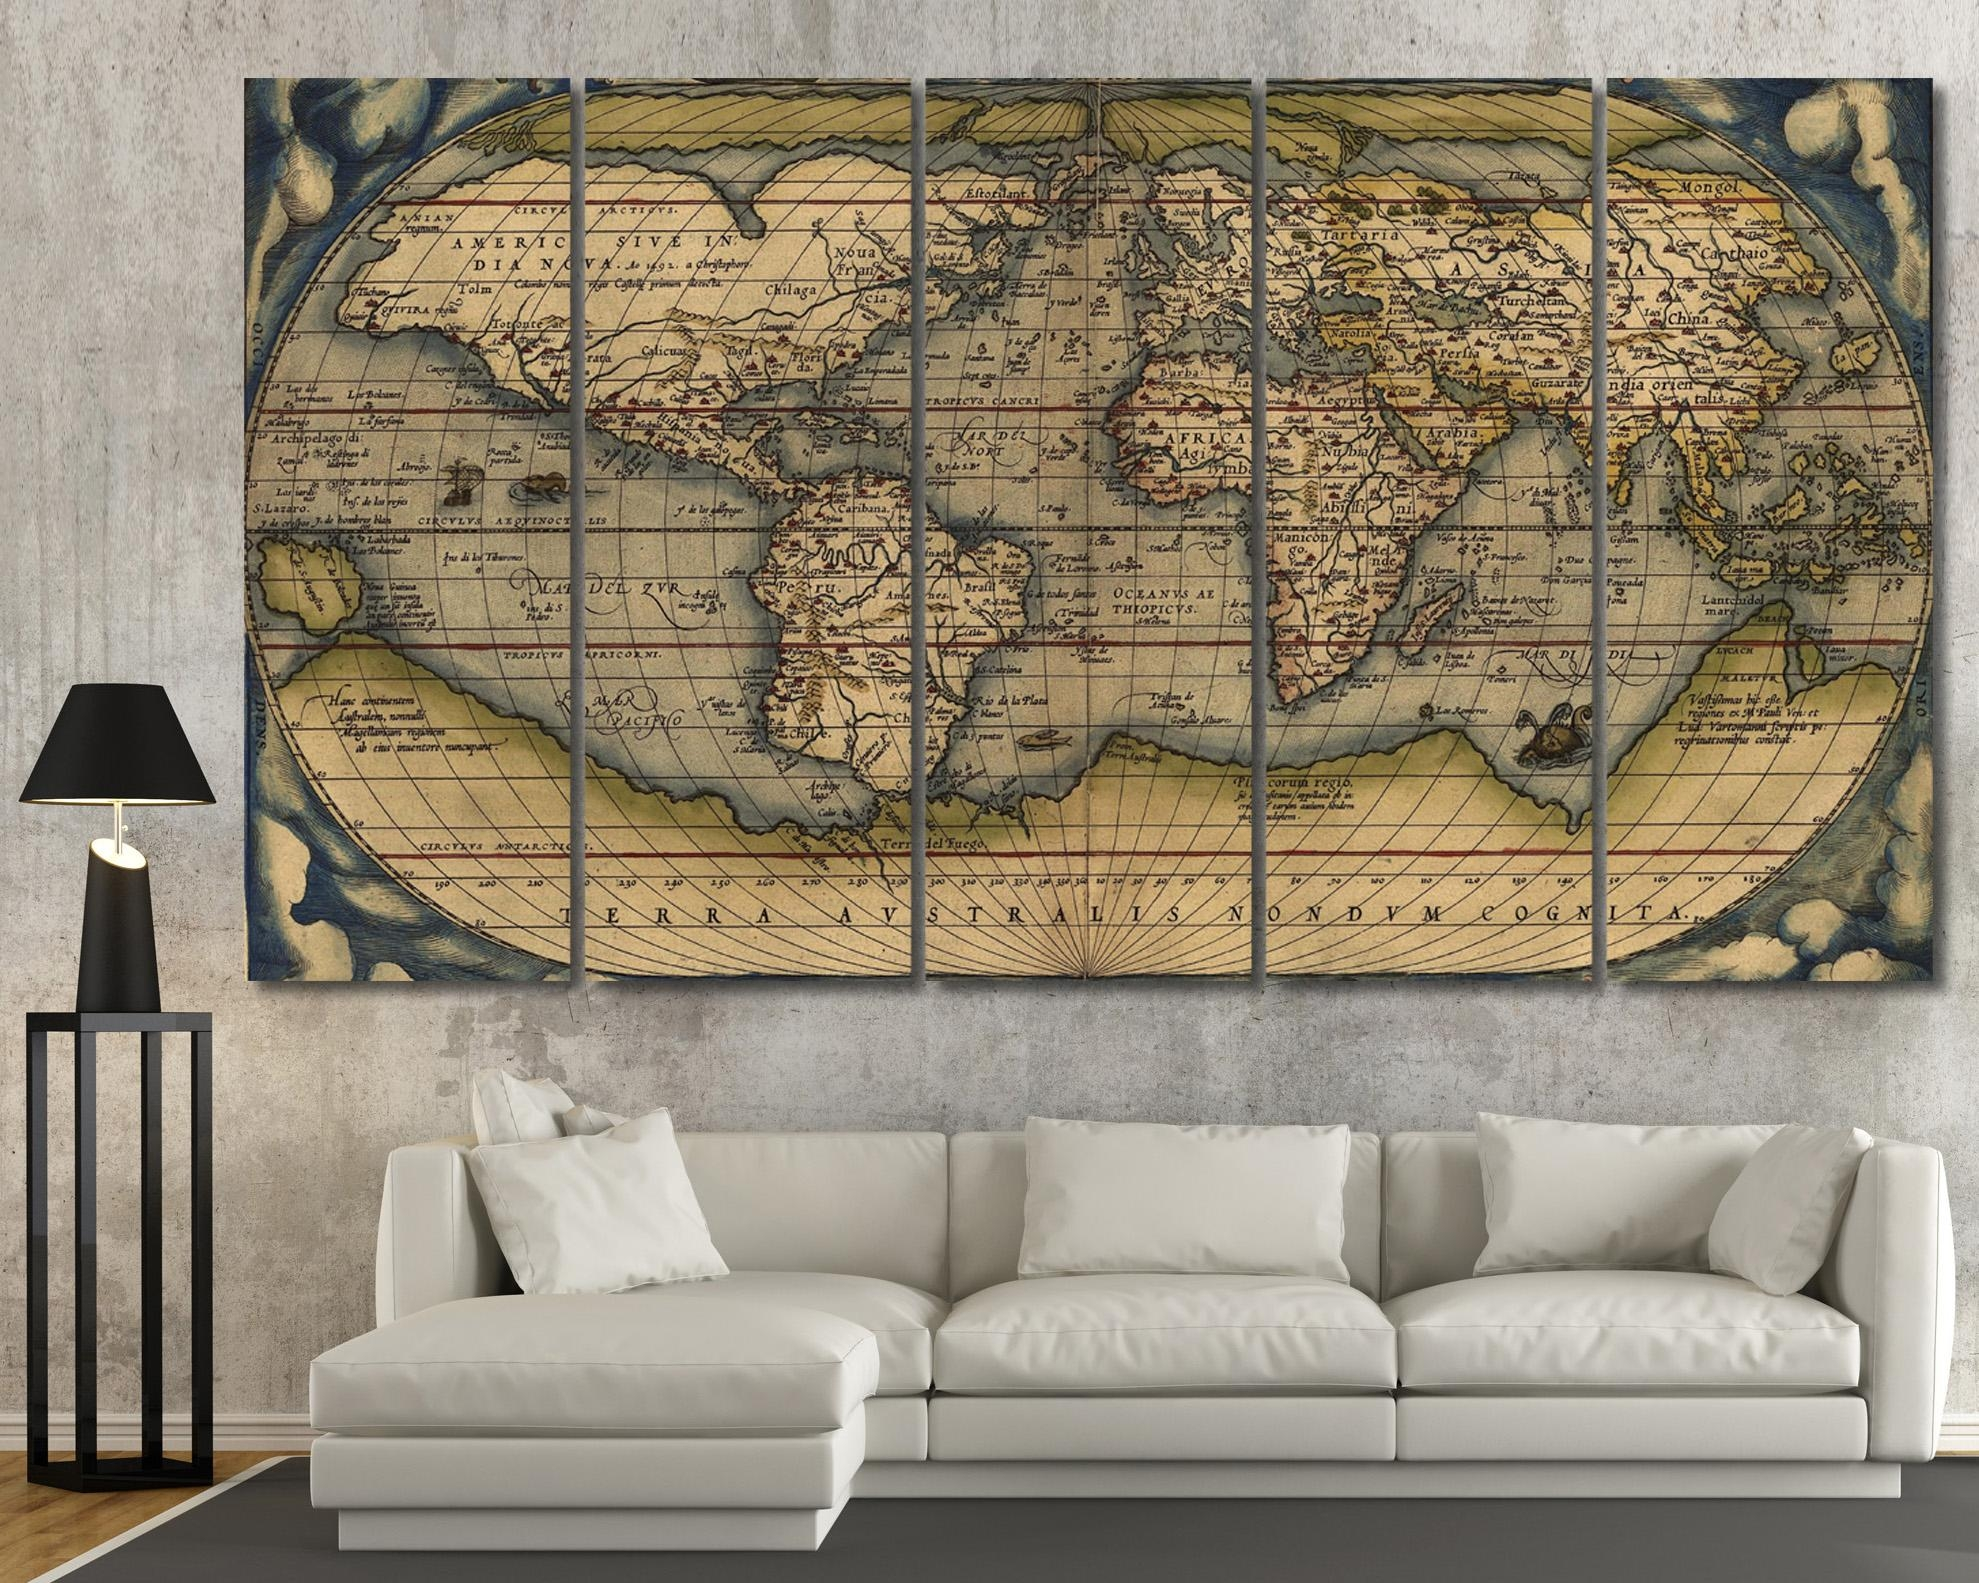 Large Vintage Wall Art Old World Map At Texelprintart Within Maps For Wall Art (View 6 of 20)